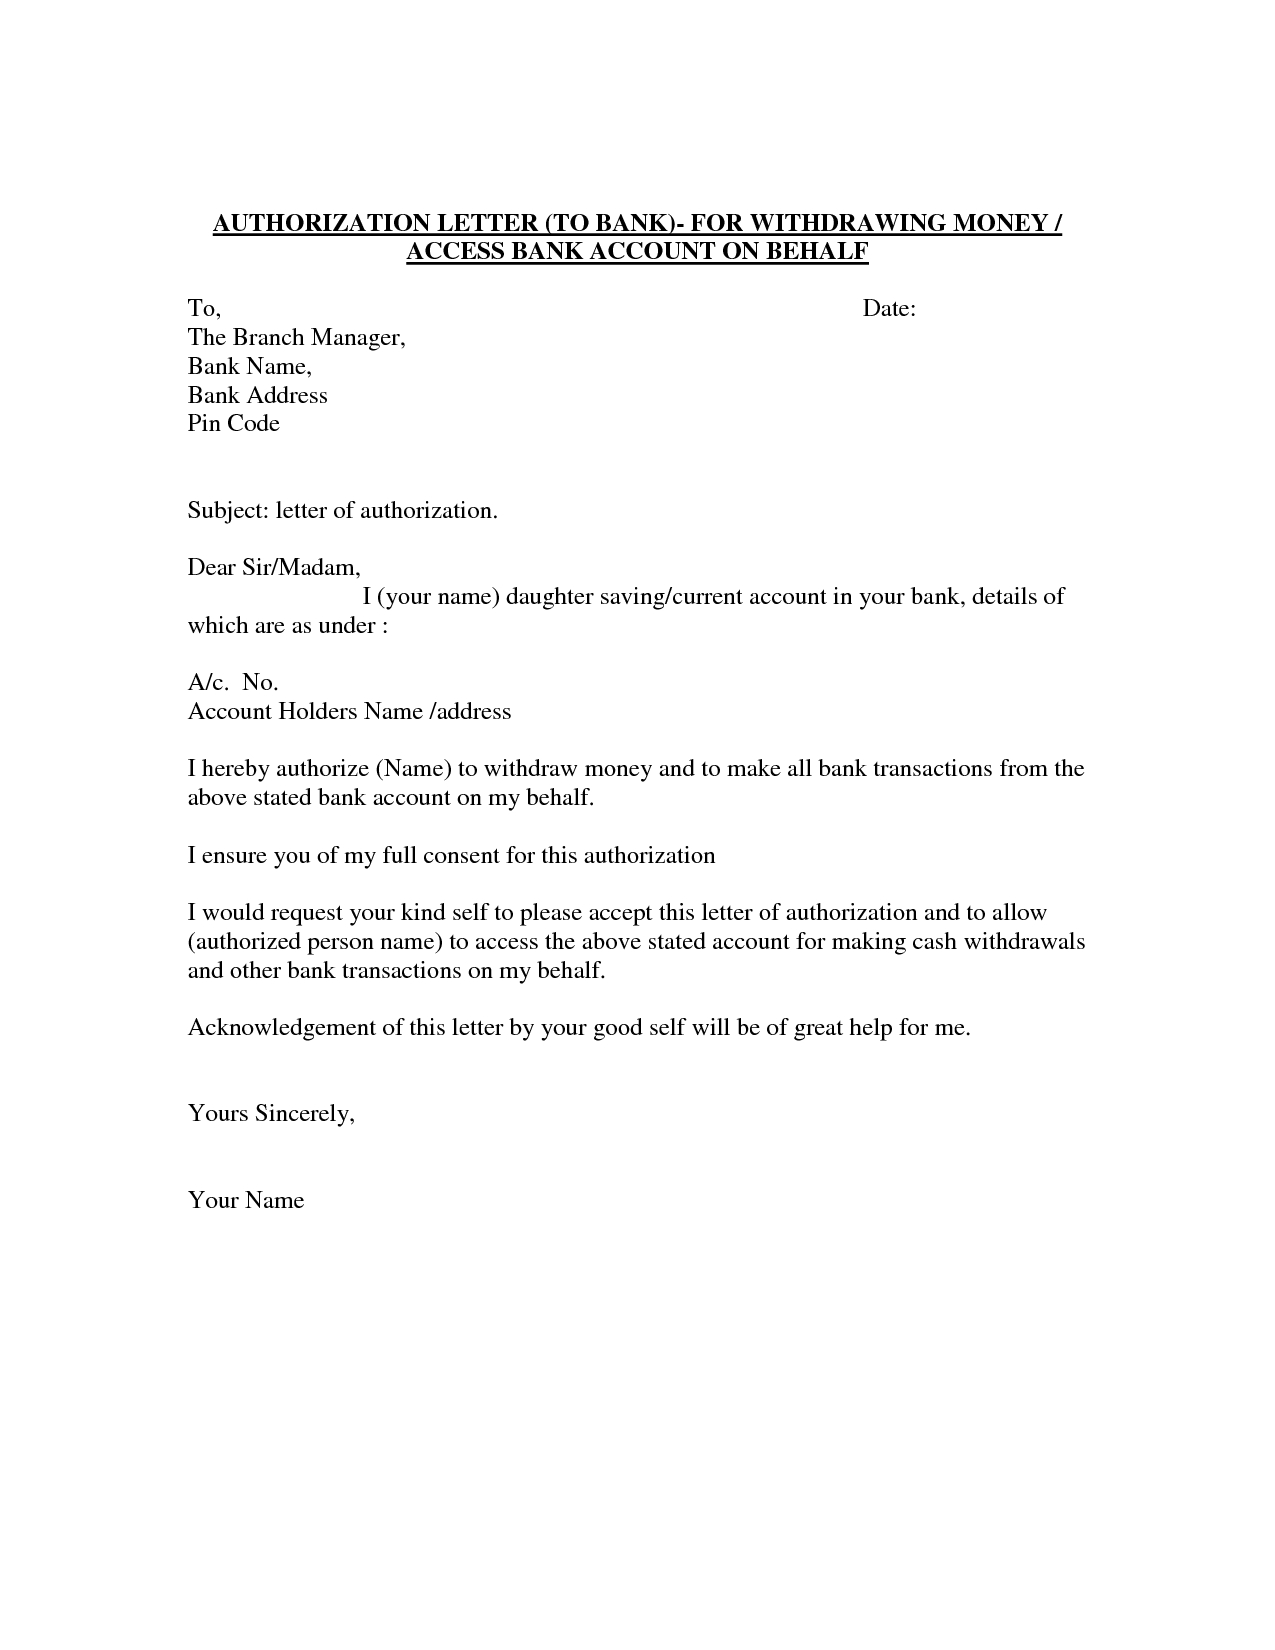 Confirmation Letter Template - Authorization Letter Template Best Car Galleryformal Letter